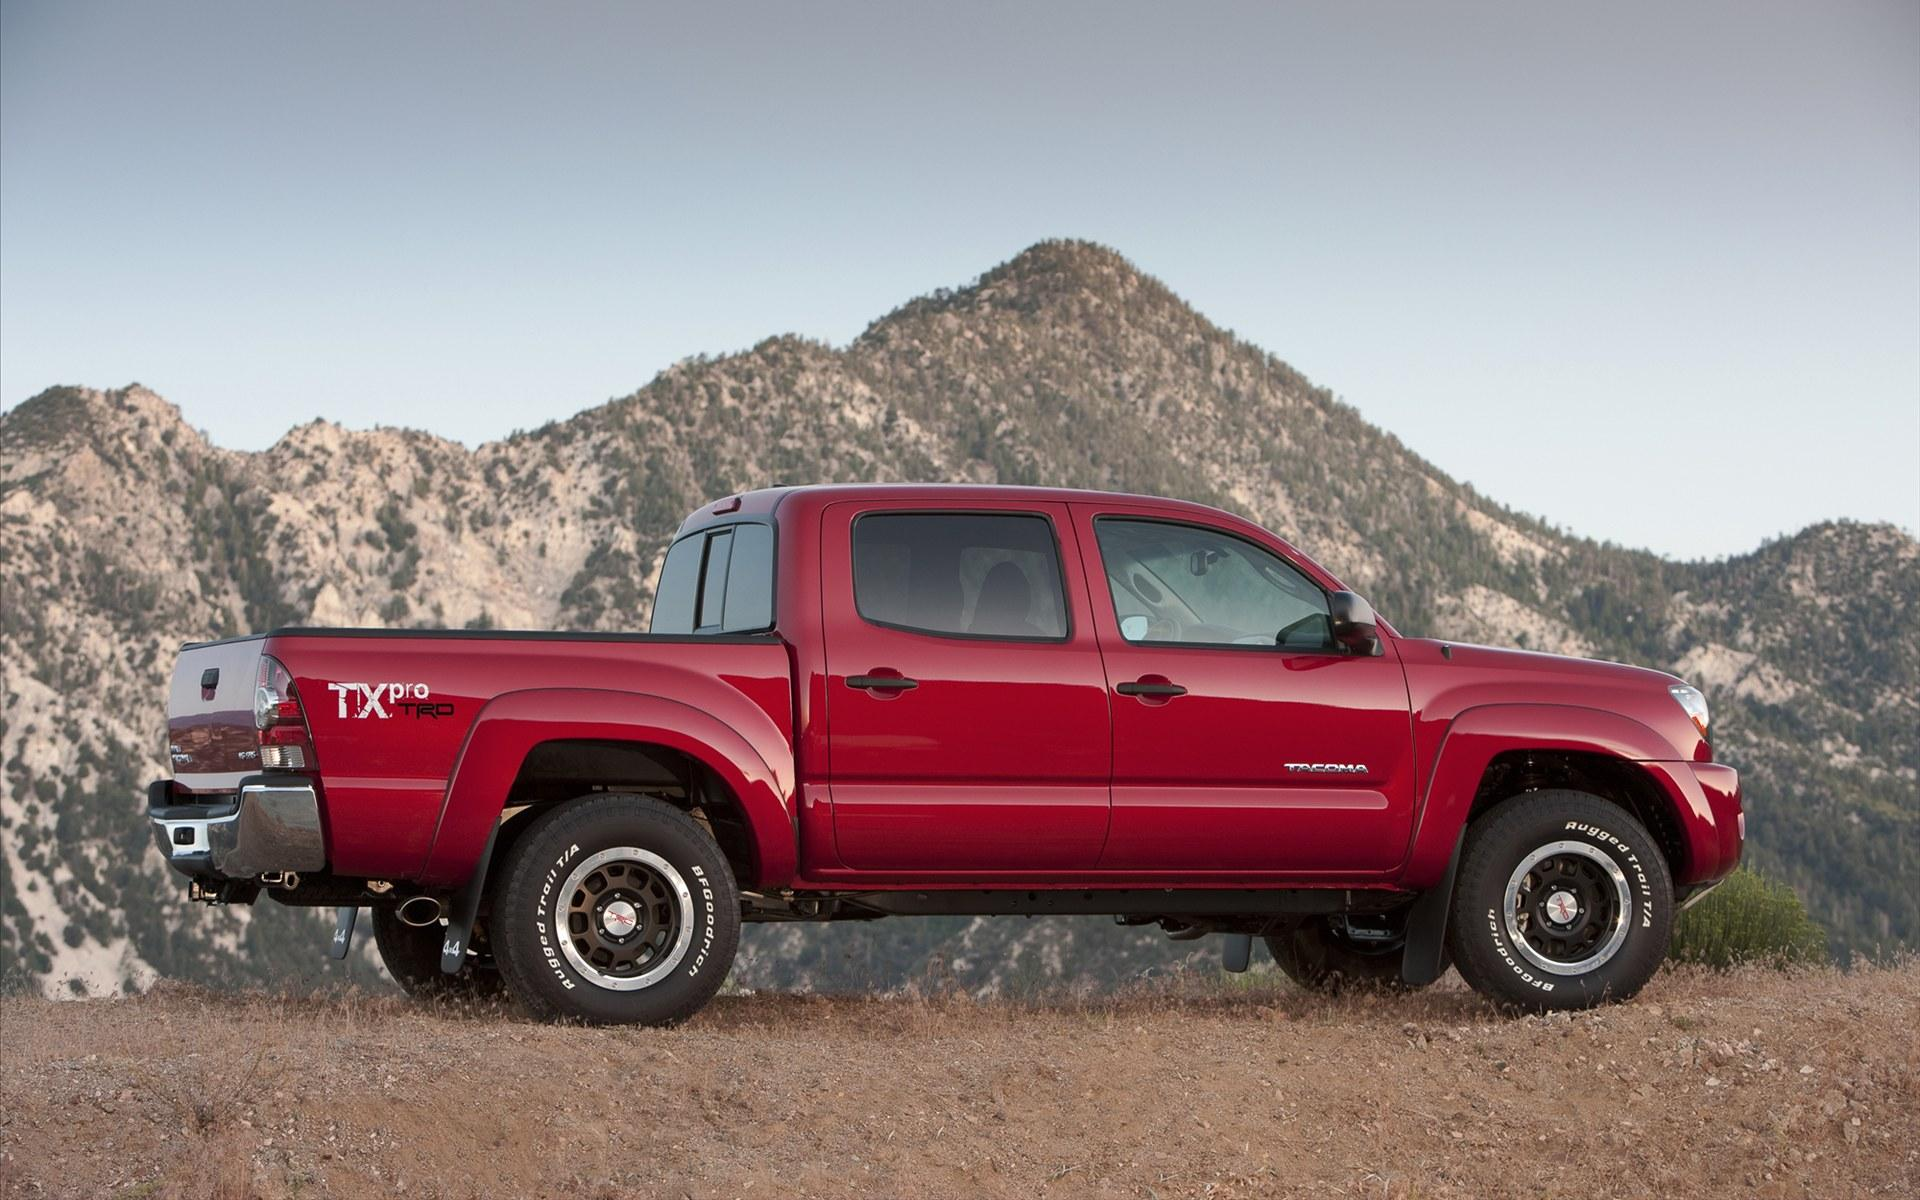 2011 Toyota Tacoma Double Cab wallpaper   403520 1920x1200